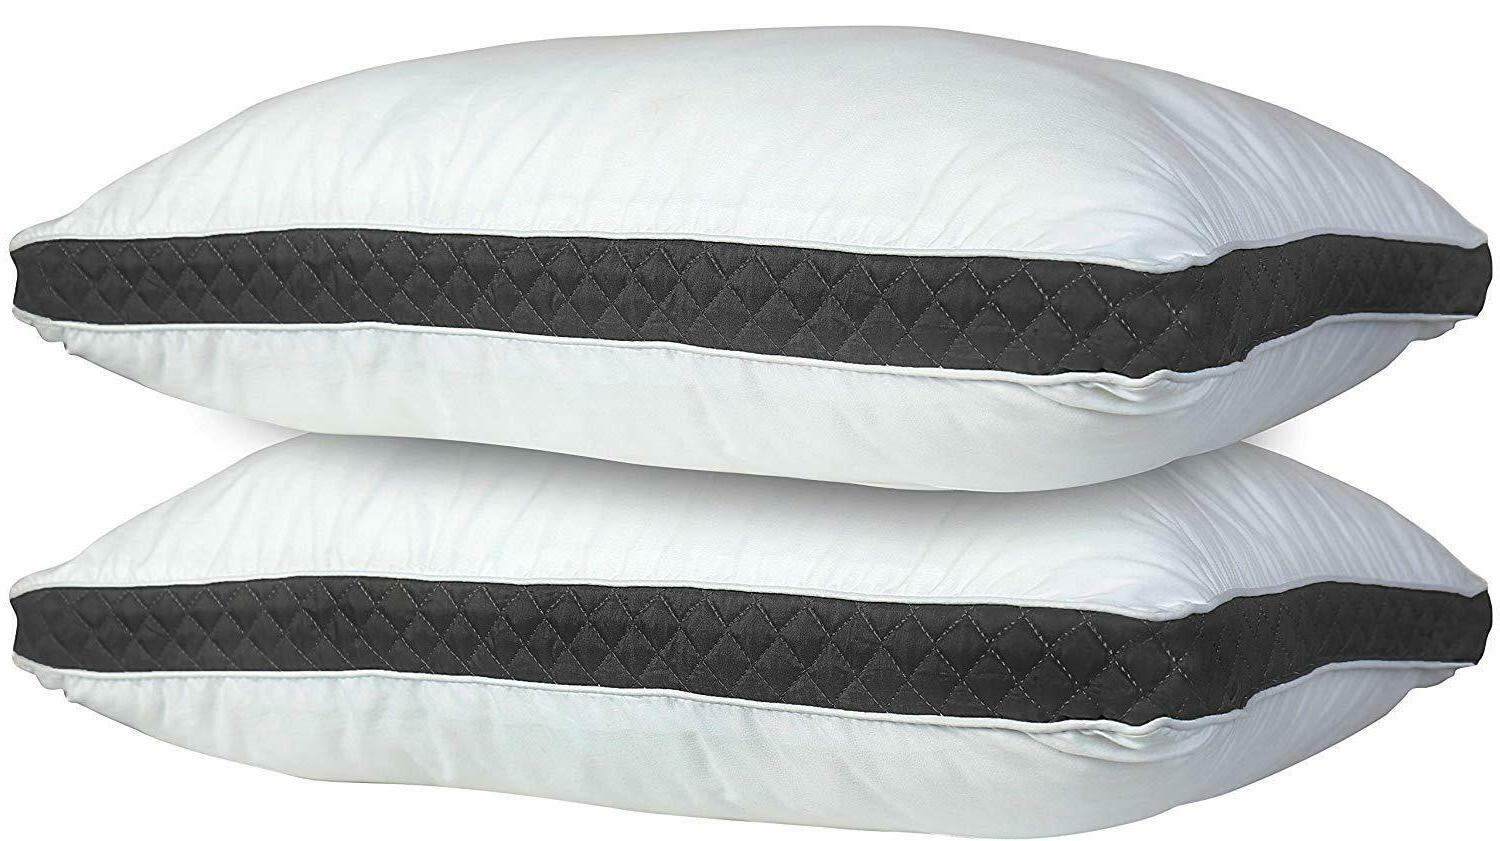 microfiber gusseted quilted bed pillows premium bed